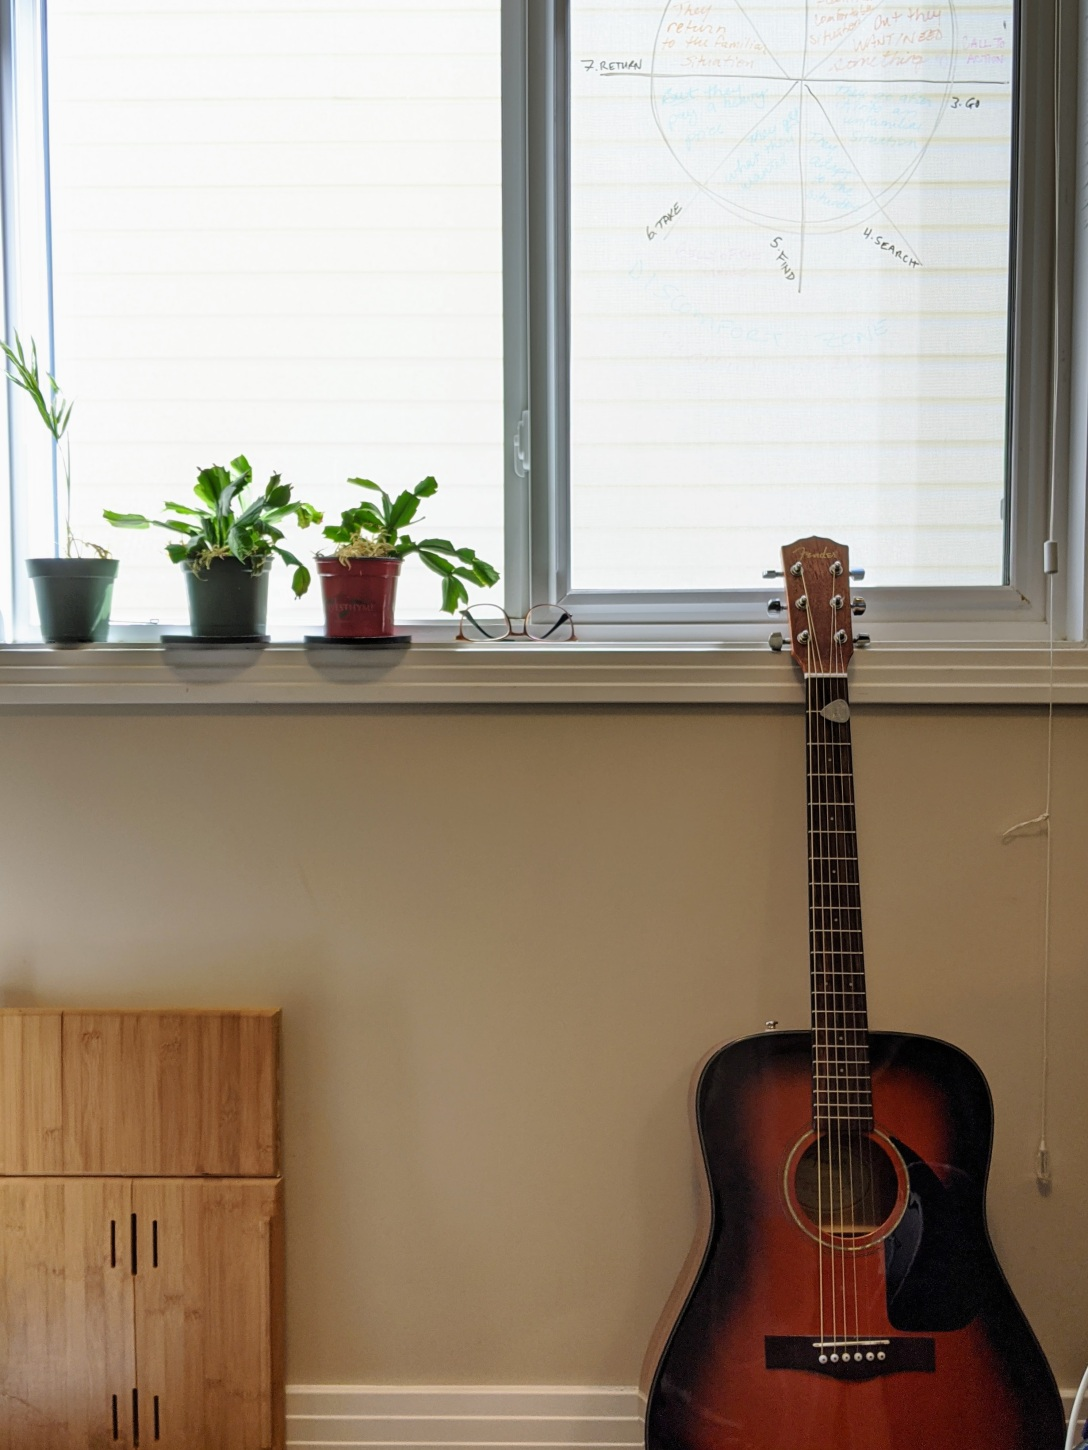 A picture from one end of my office, where my Christmas cacti are enjoying the sunny windowsill and my guitar is leaning against the wall underneath a dry erase-drawn version of the 8-point story wheel.